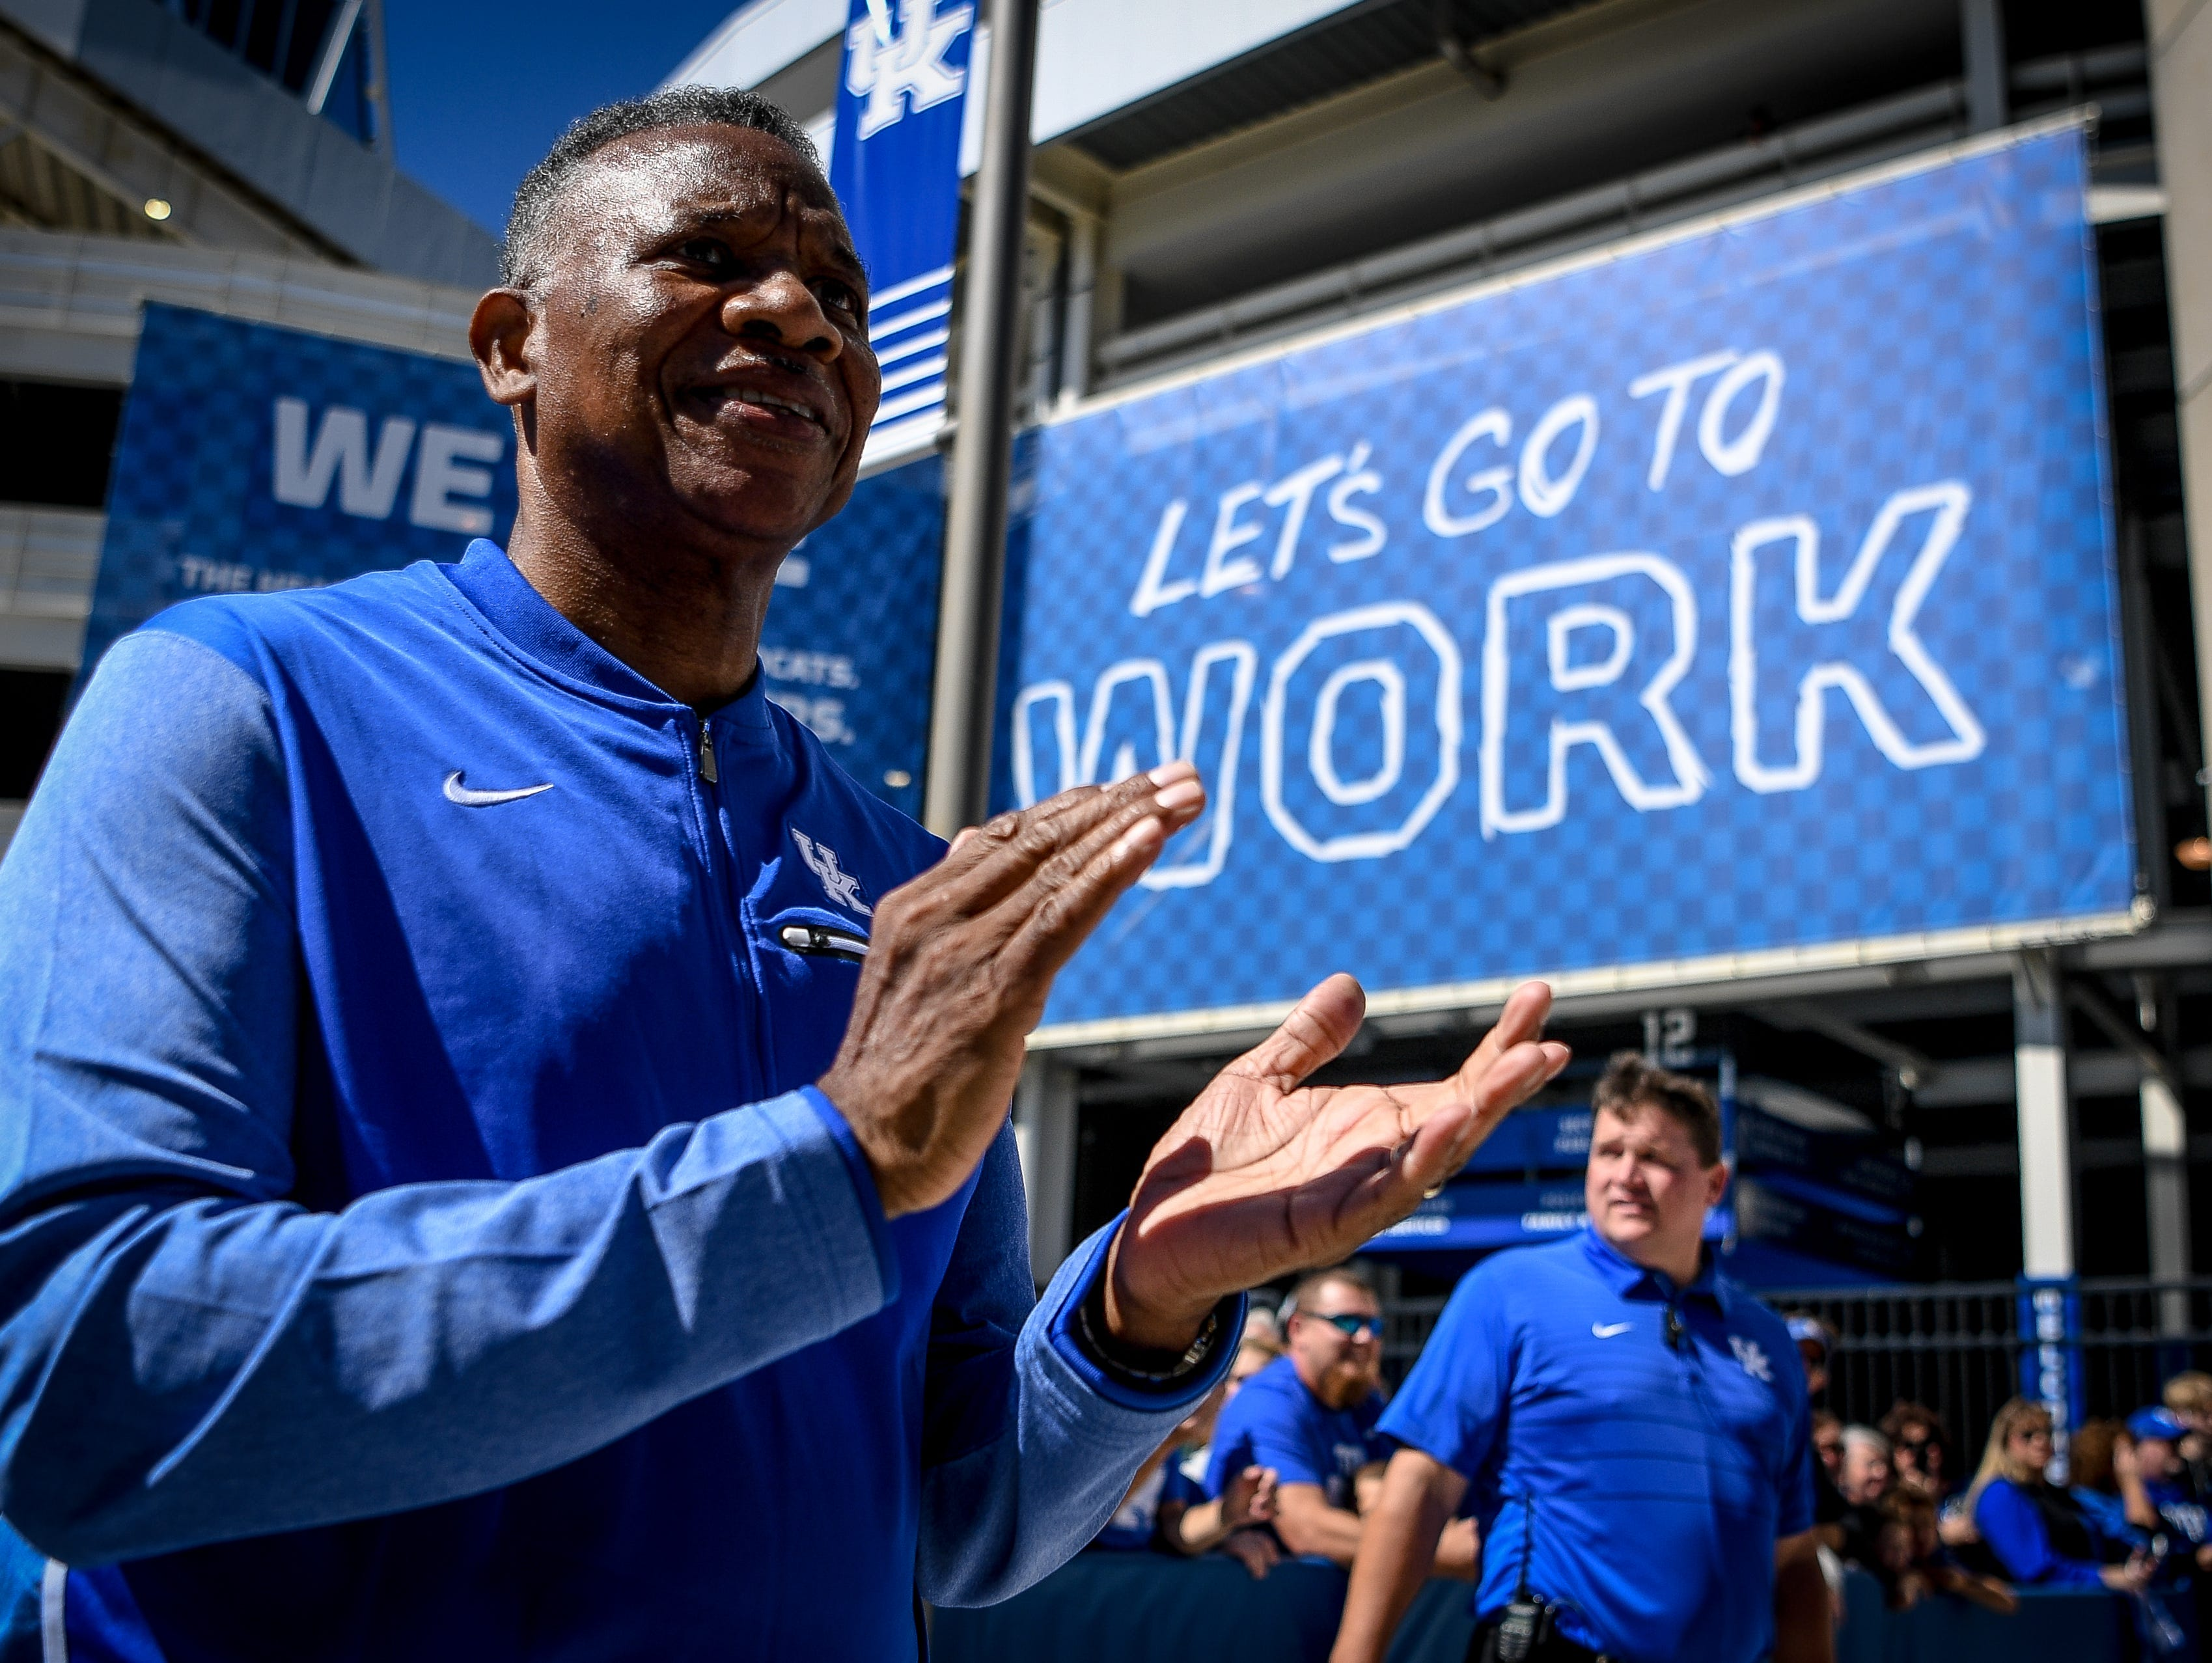 Nate Northington, former Wildcat defensive back, and the first African-American to play in a Southeast Conference football game, greets the Wildcats as they arrive at Froger Field prior to the game against Eastern Michigan University in Lexington on September 30, 2017.